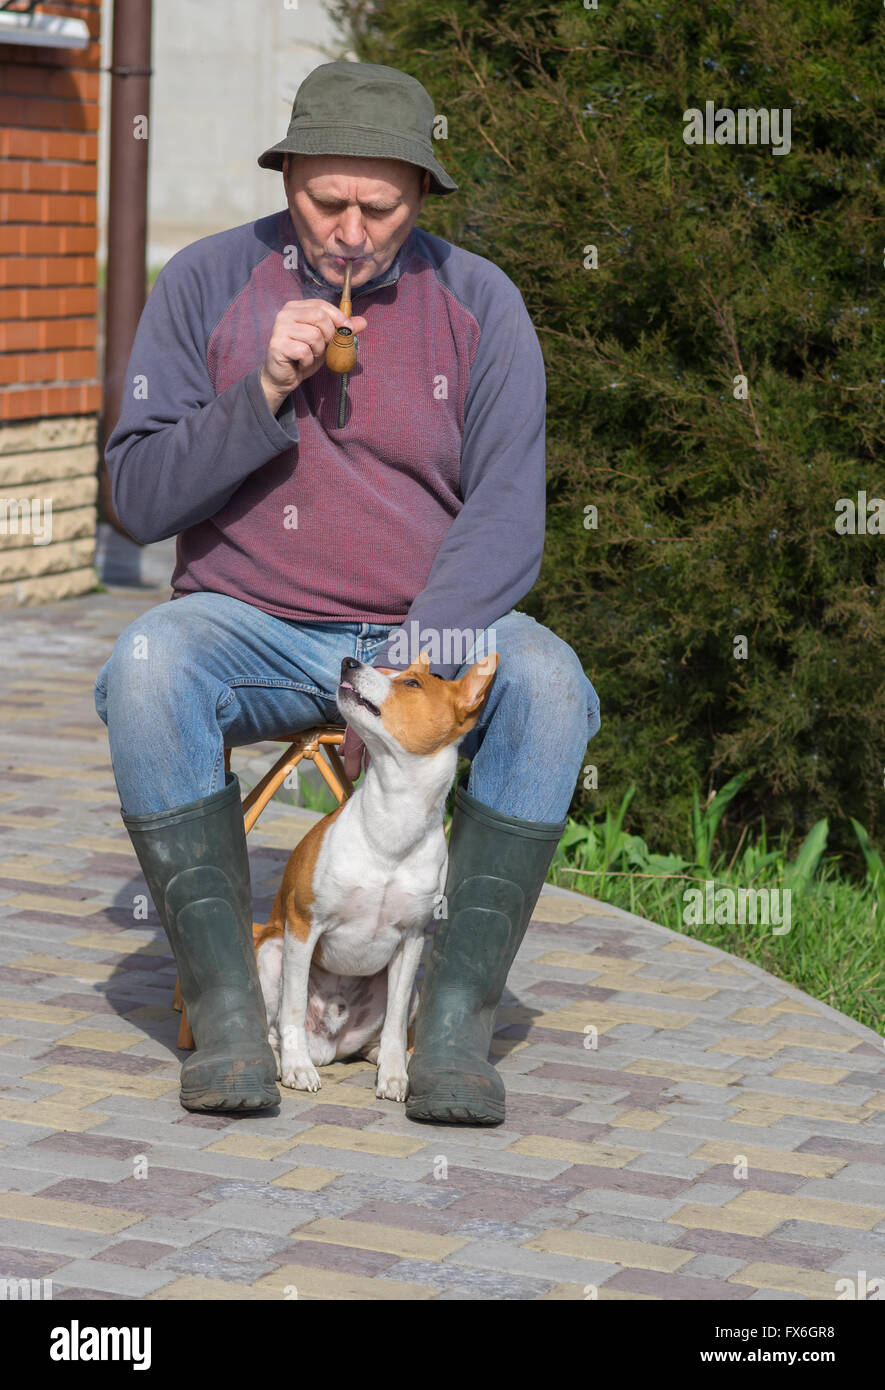 Young dog shows dissatisfaction of master's smoking while having rest in the garden - Stock Image